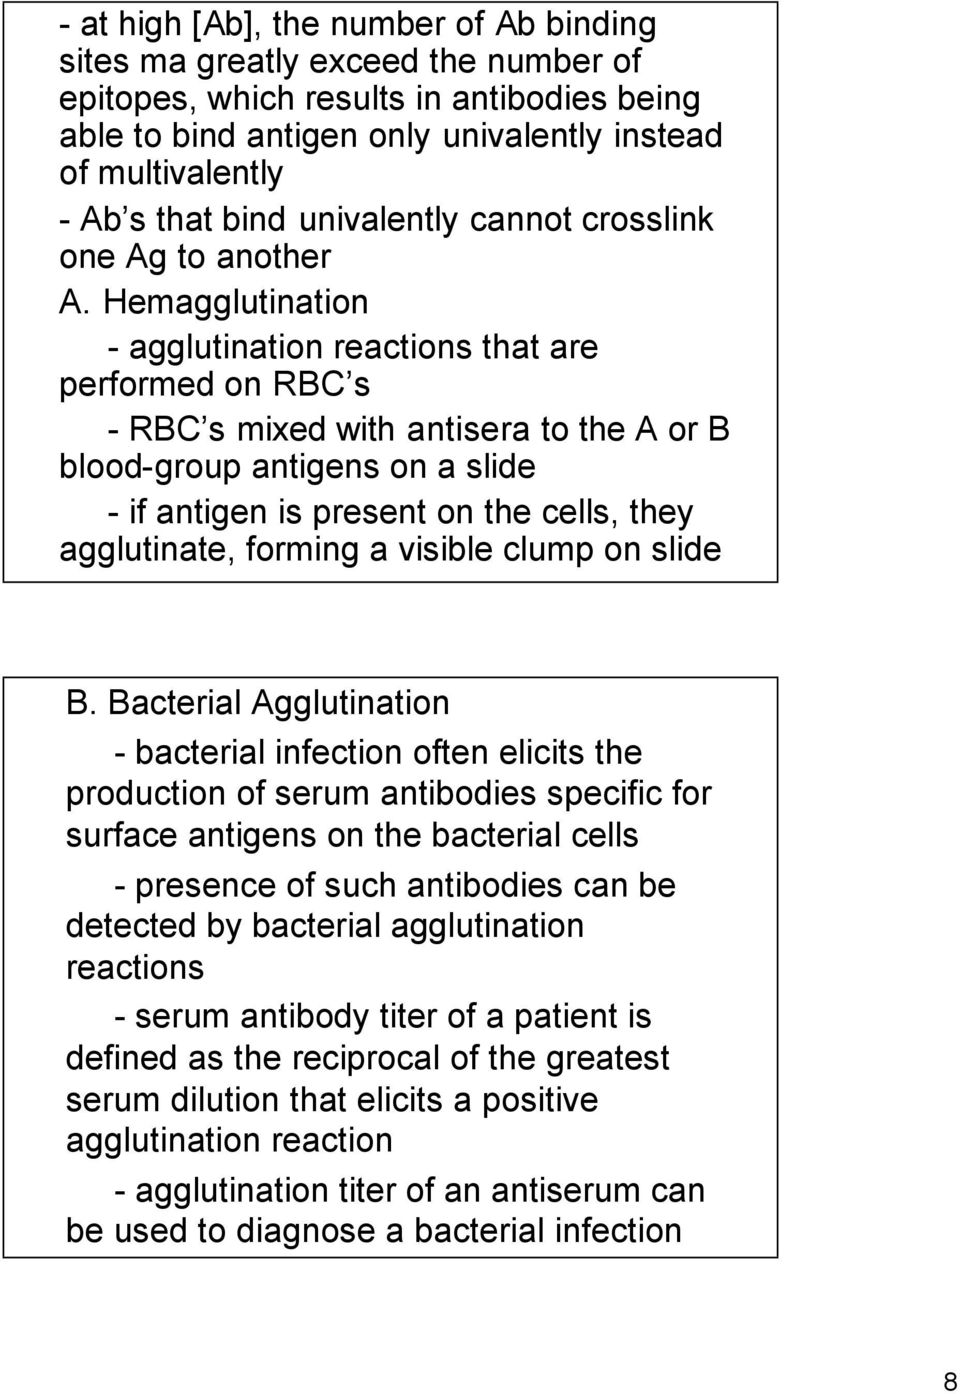 Hemagglutination - agglutination reactions that are performed on RBC s - RBC s mixed with antisera to the A or B blood-group antigens on a slide - if antigen is present on the cells, they